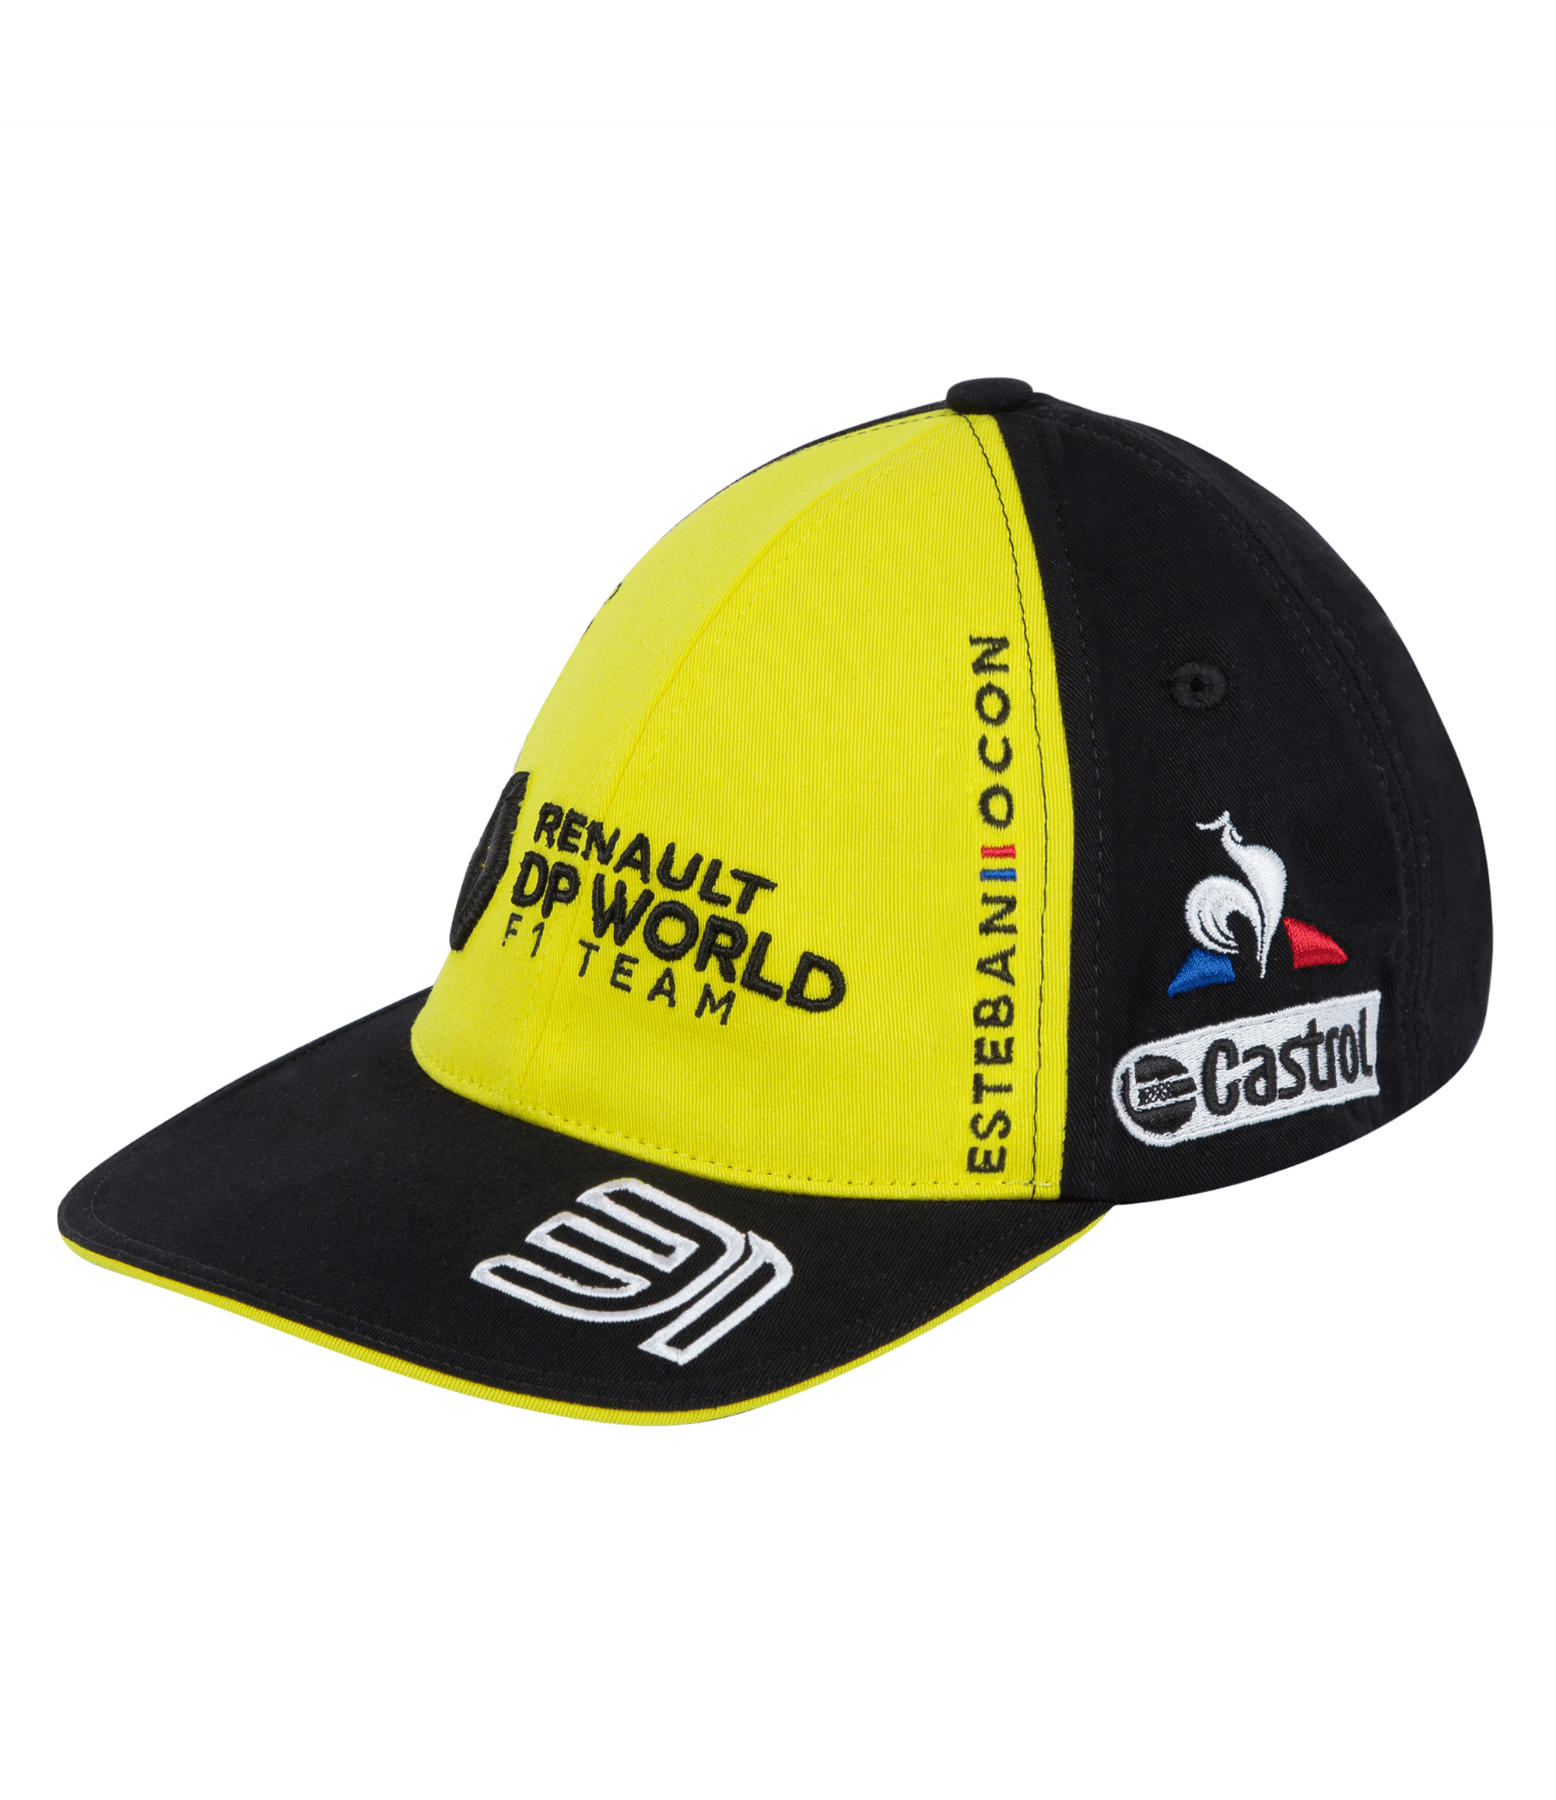 RENAULT DP WORLD F1® TEAM 2020 Ocon #31 kid's cap